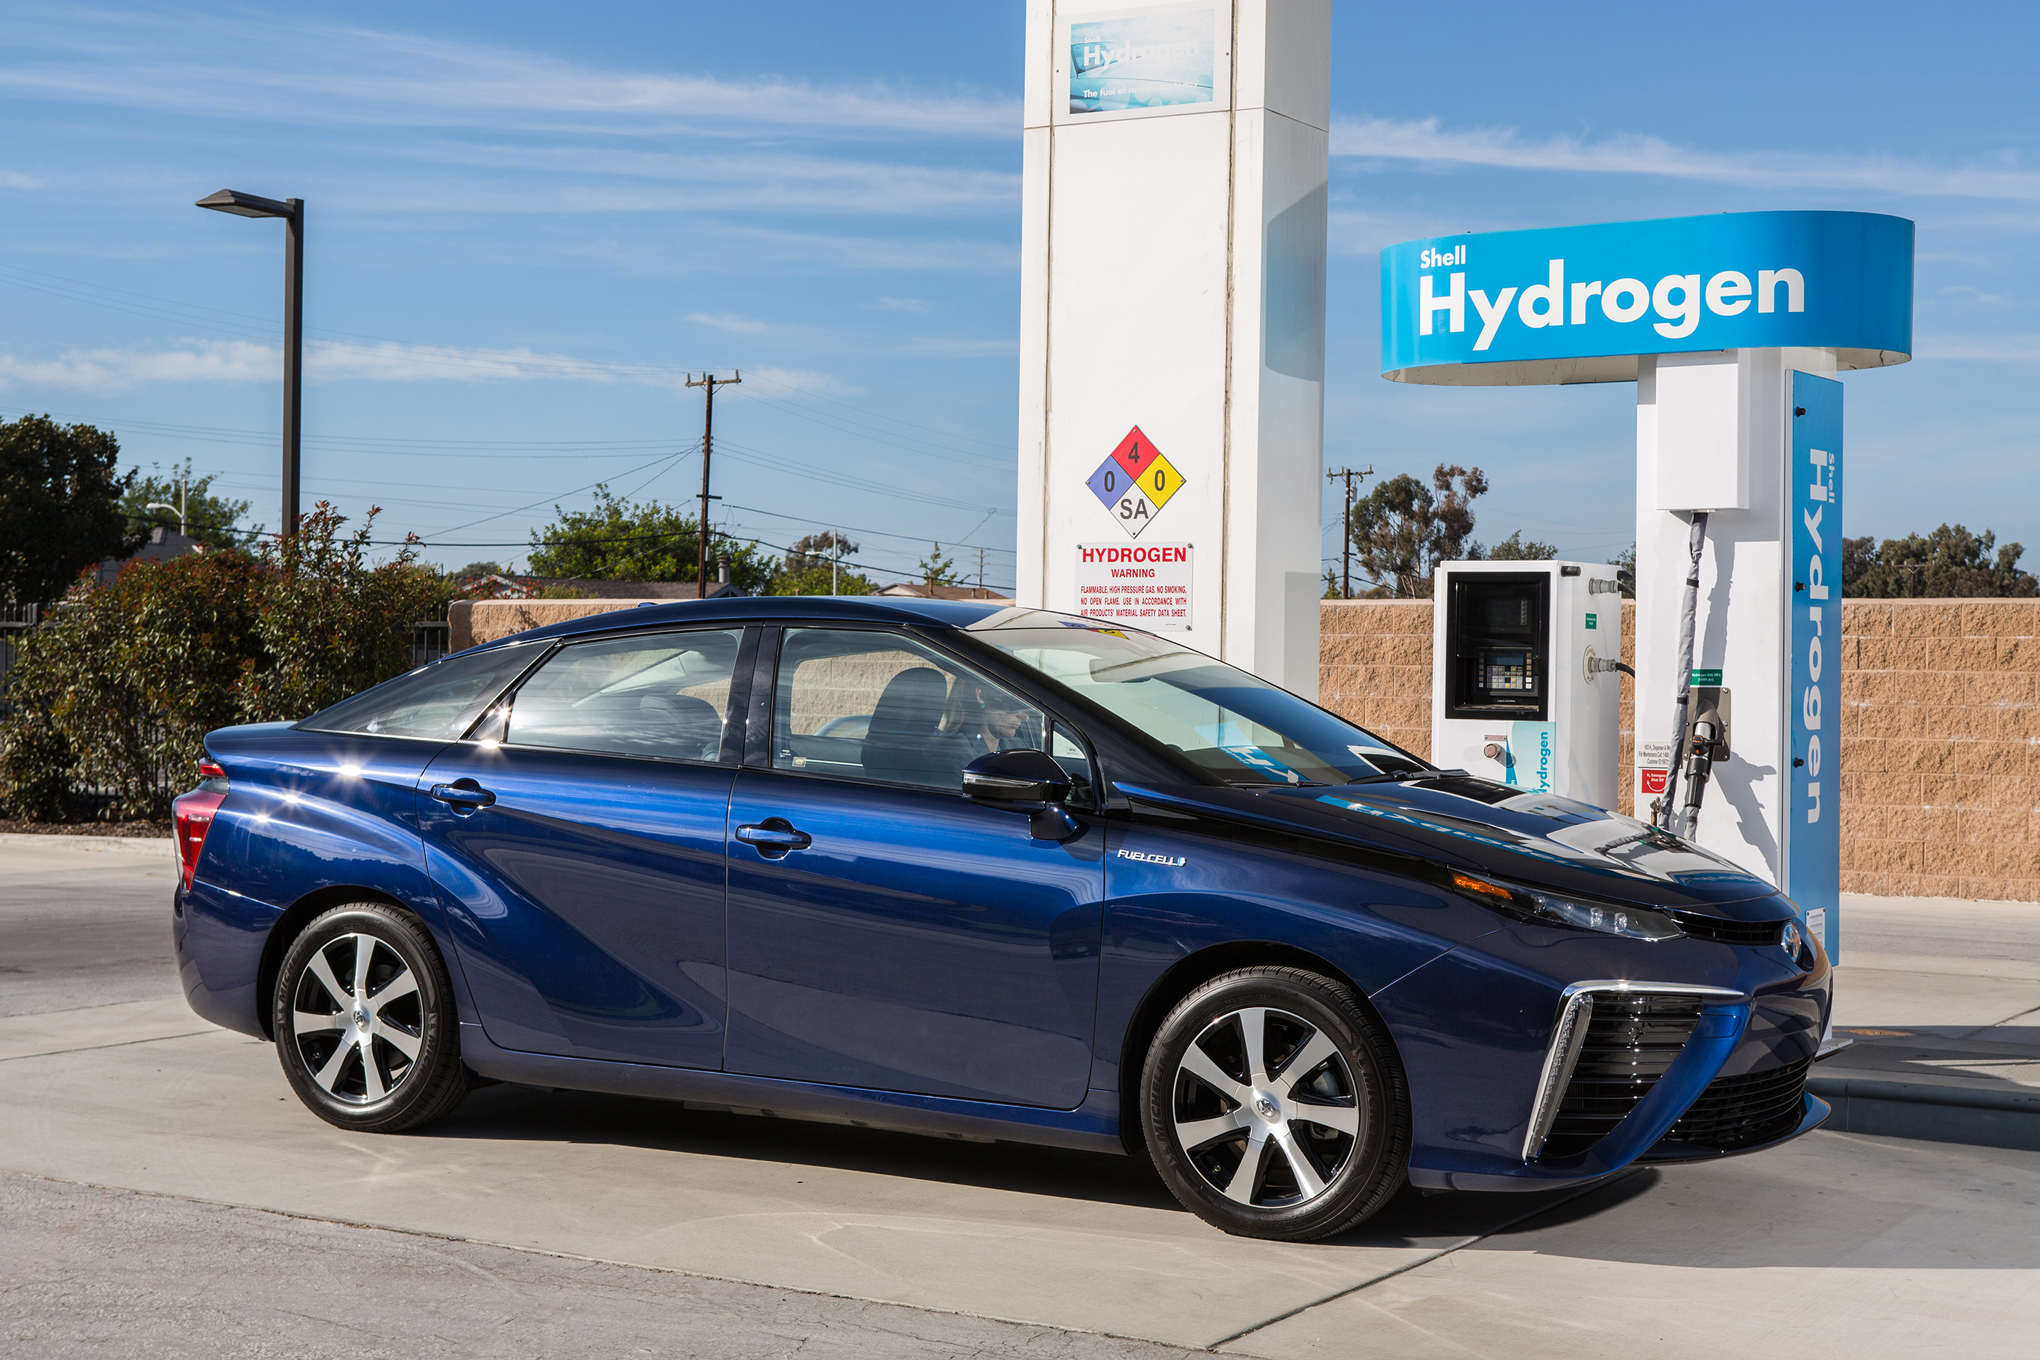 Dubai Likely to Get hydrogen-powered Taxis in Near Future